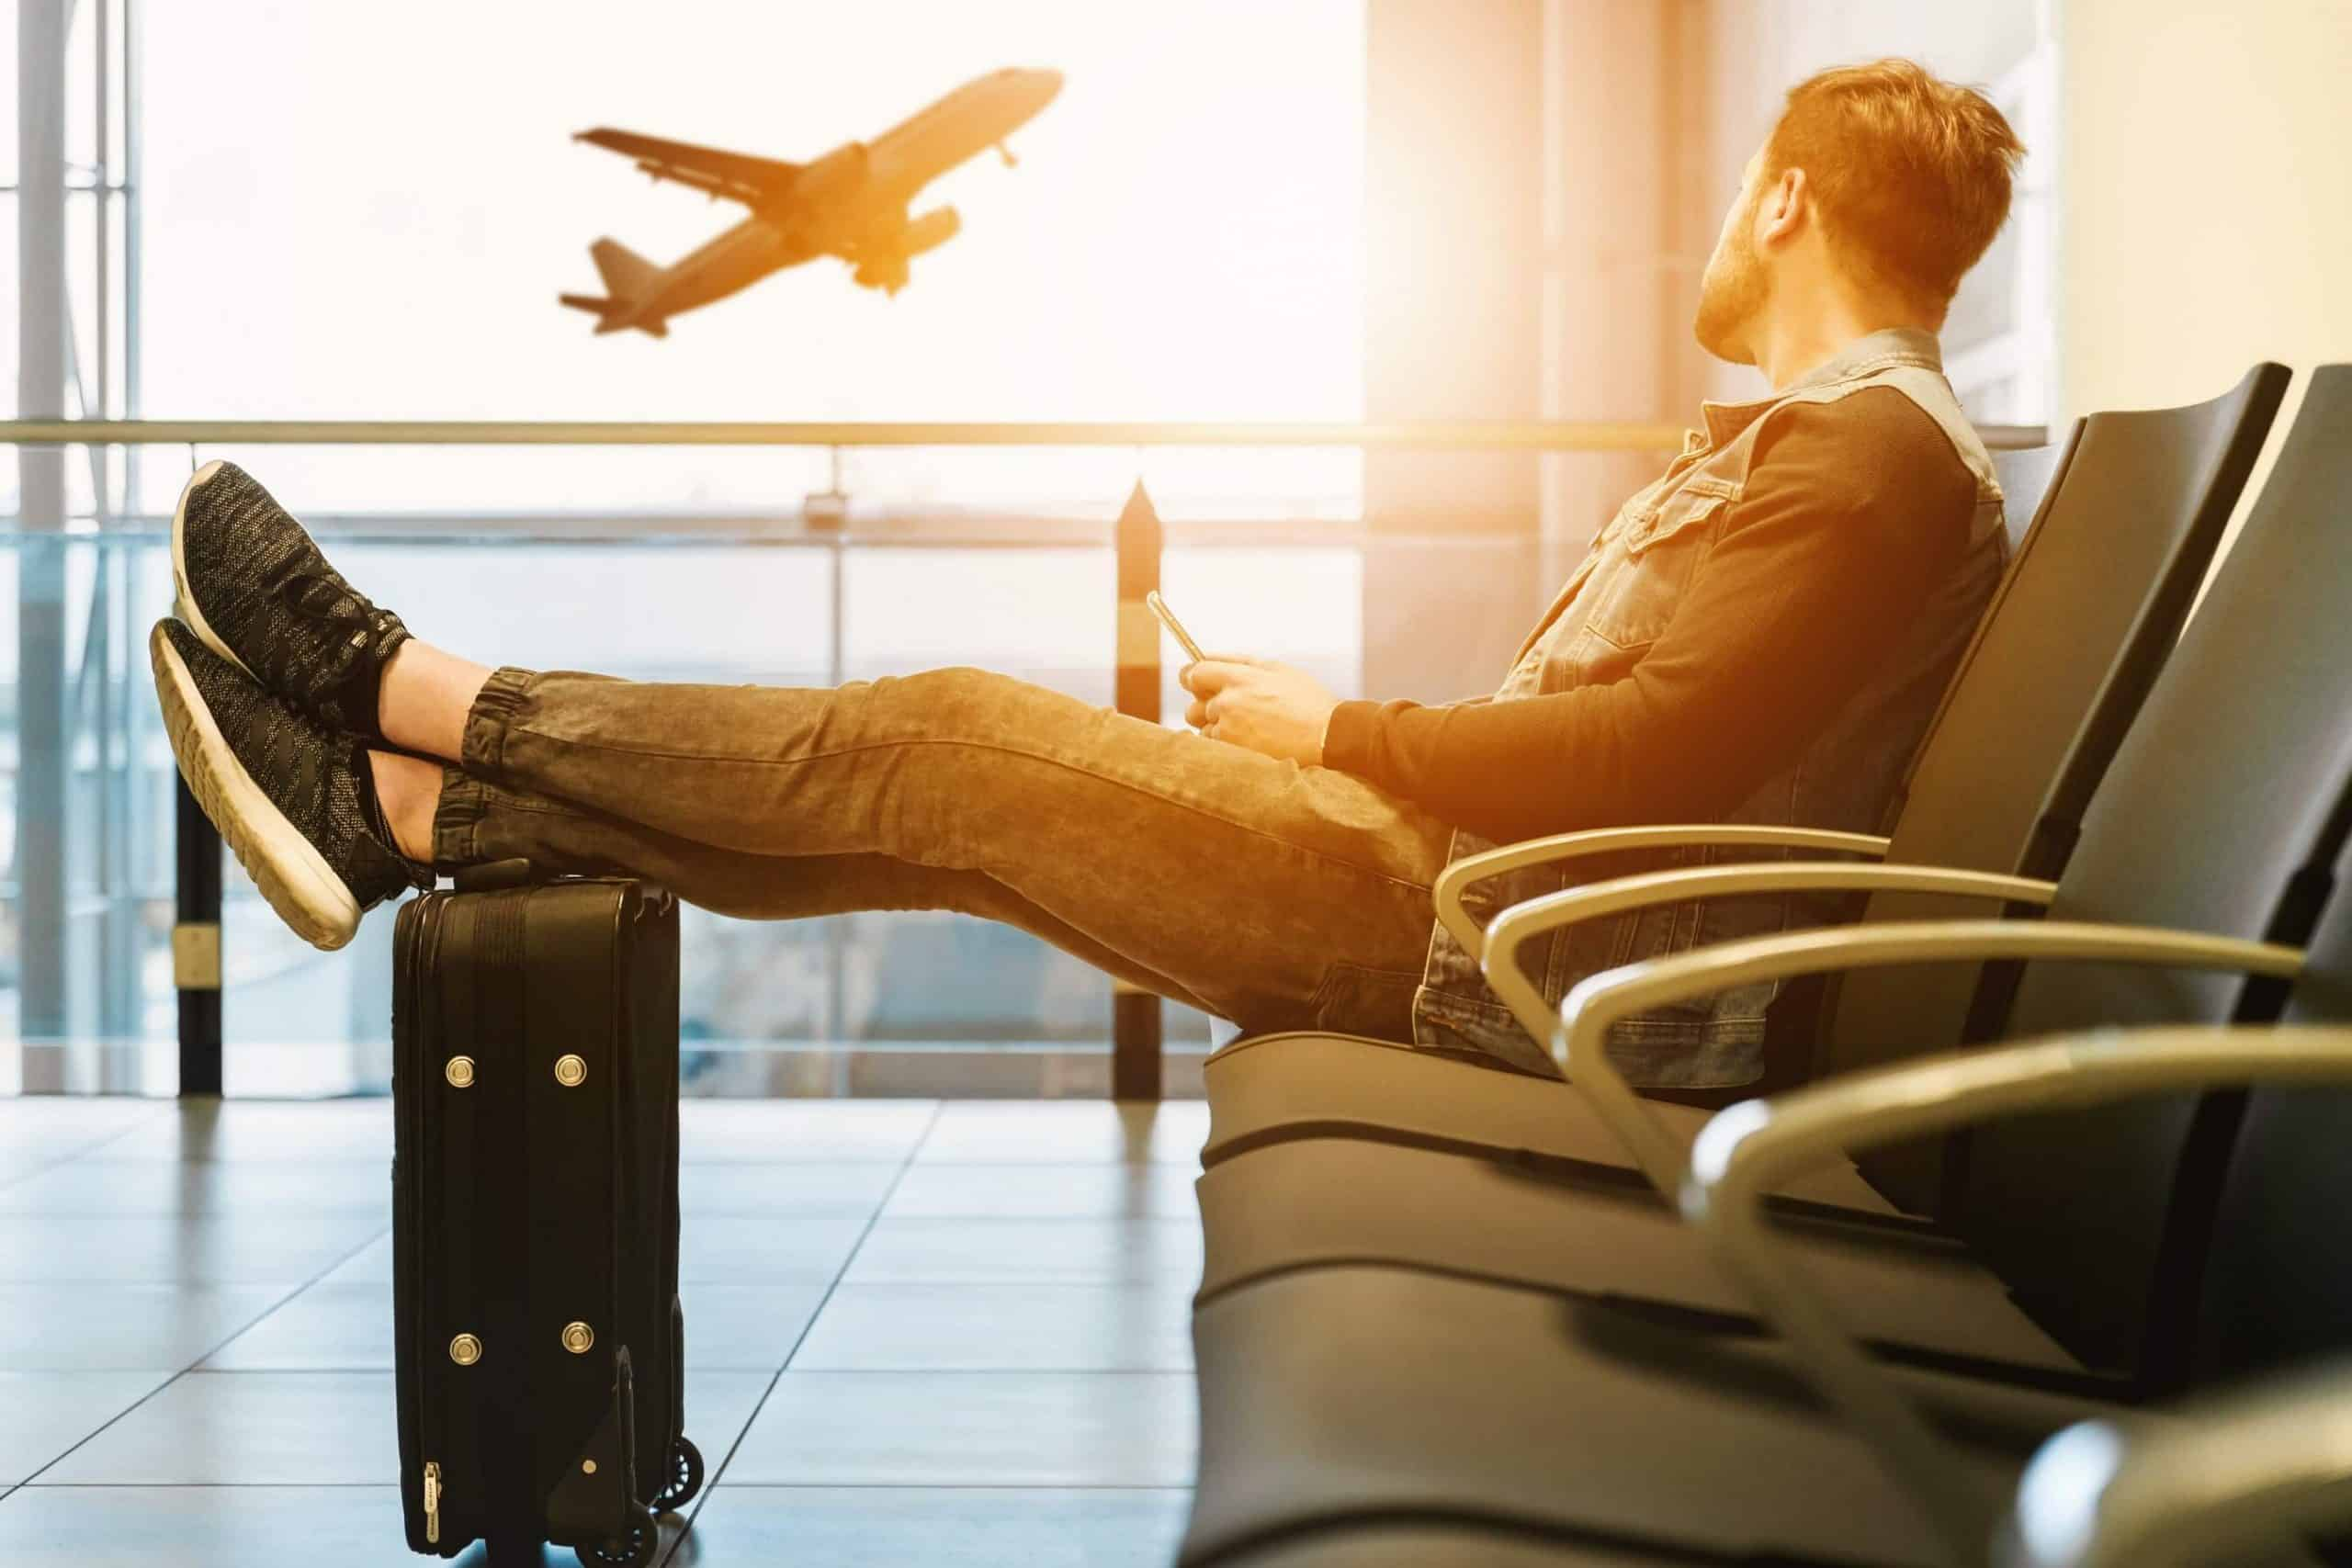 Man Sitting Airport Waiting with Phone feet crossed on luggage bag